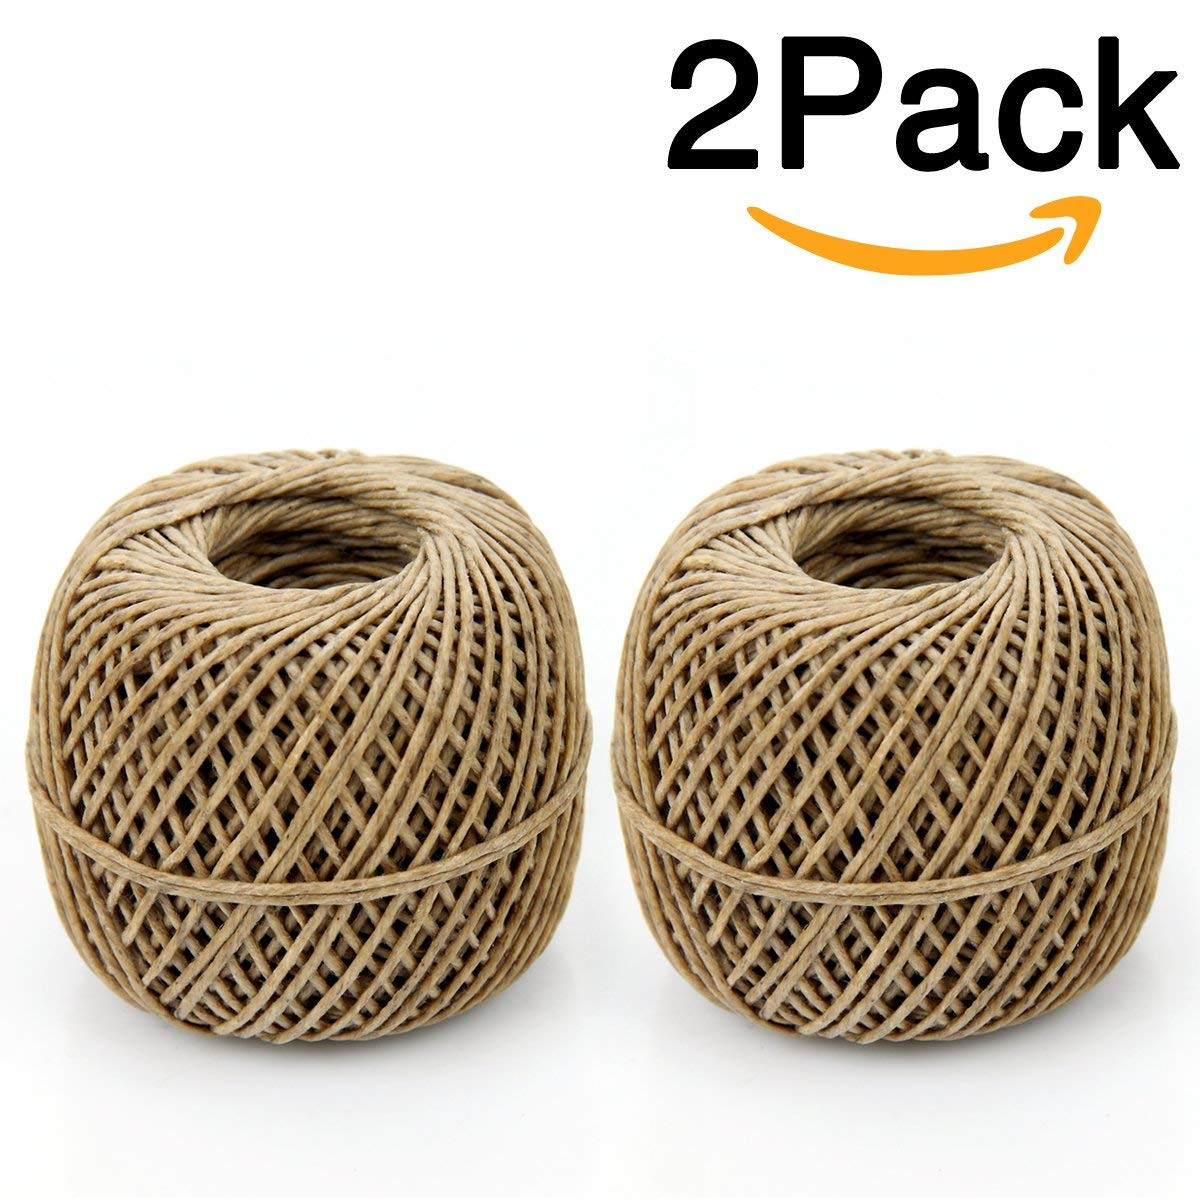 Rope Wrapped Vase Of Amazon Com Auspa 2 Pack 100 organic Hemp Wick 200 Ft Spool Well Intended for Amazon Com Auspa 2 Pack 100 organic Hemp Wick 200 Ft Spool Well Coated with Natural Beeswax Standard Size Home Kitchen